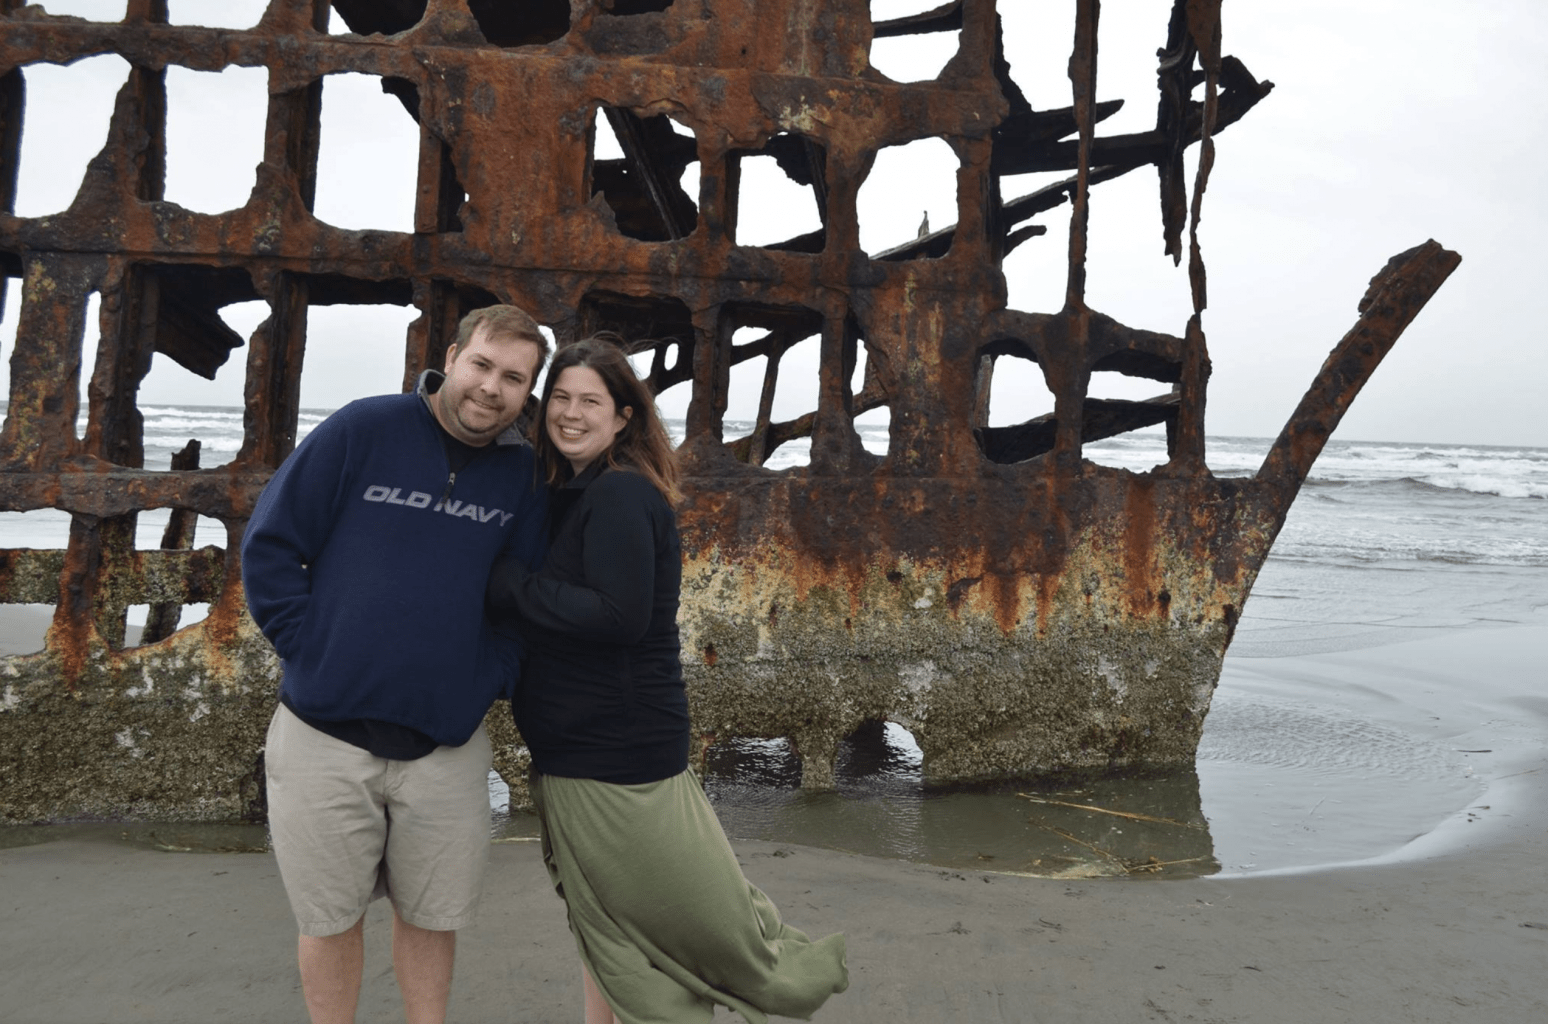 Oregon Shipwreck Peter Iredale Shipwreck